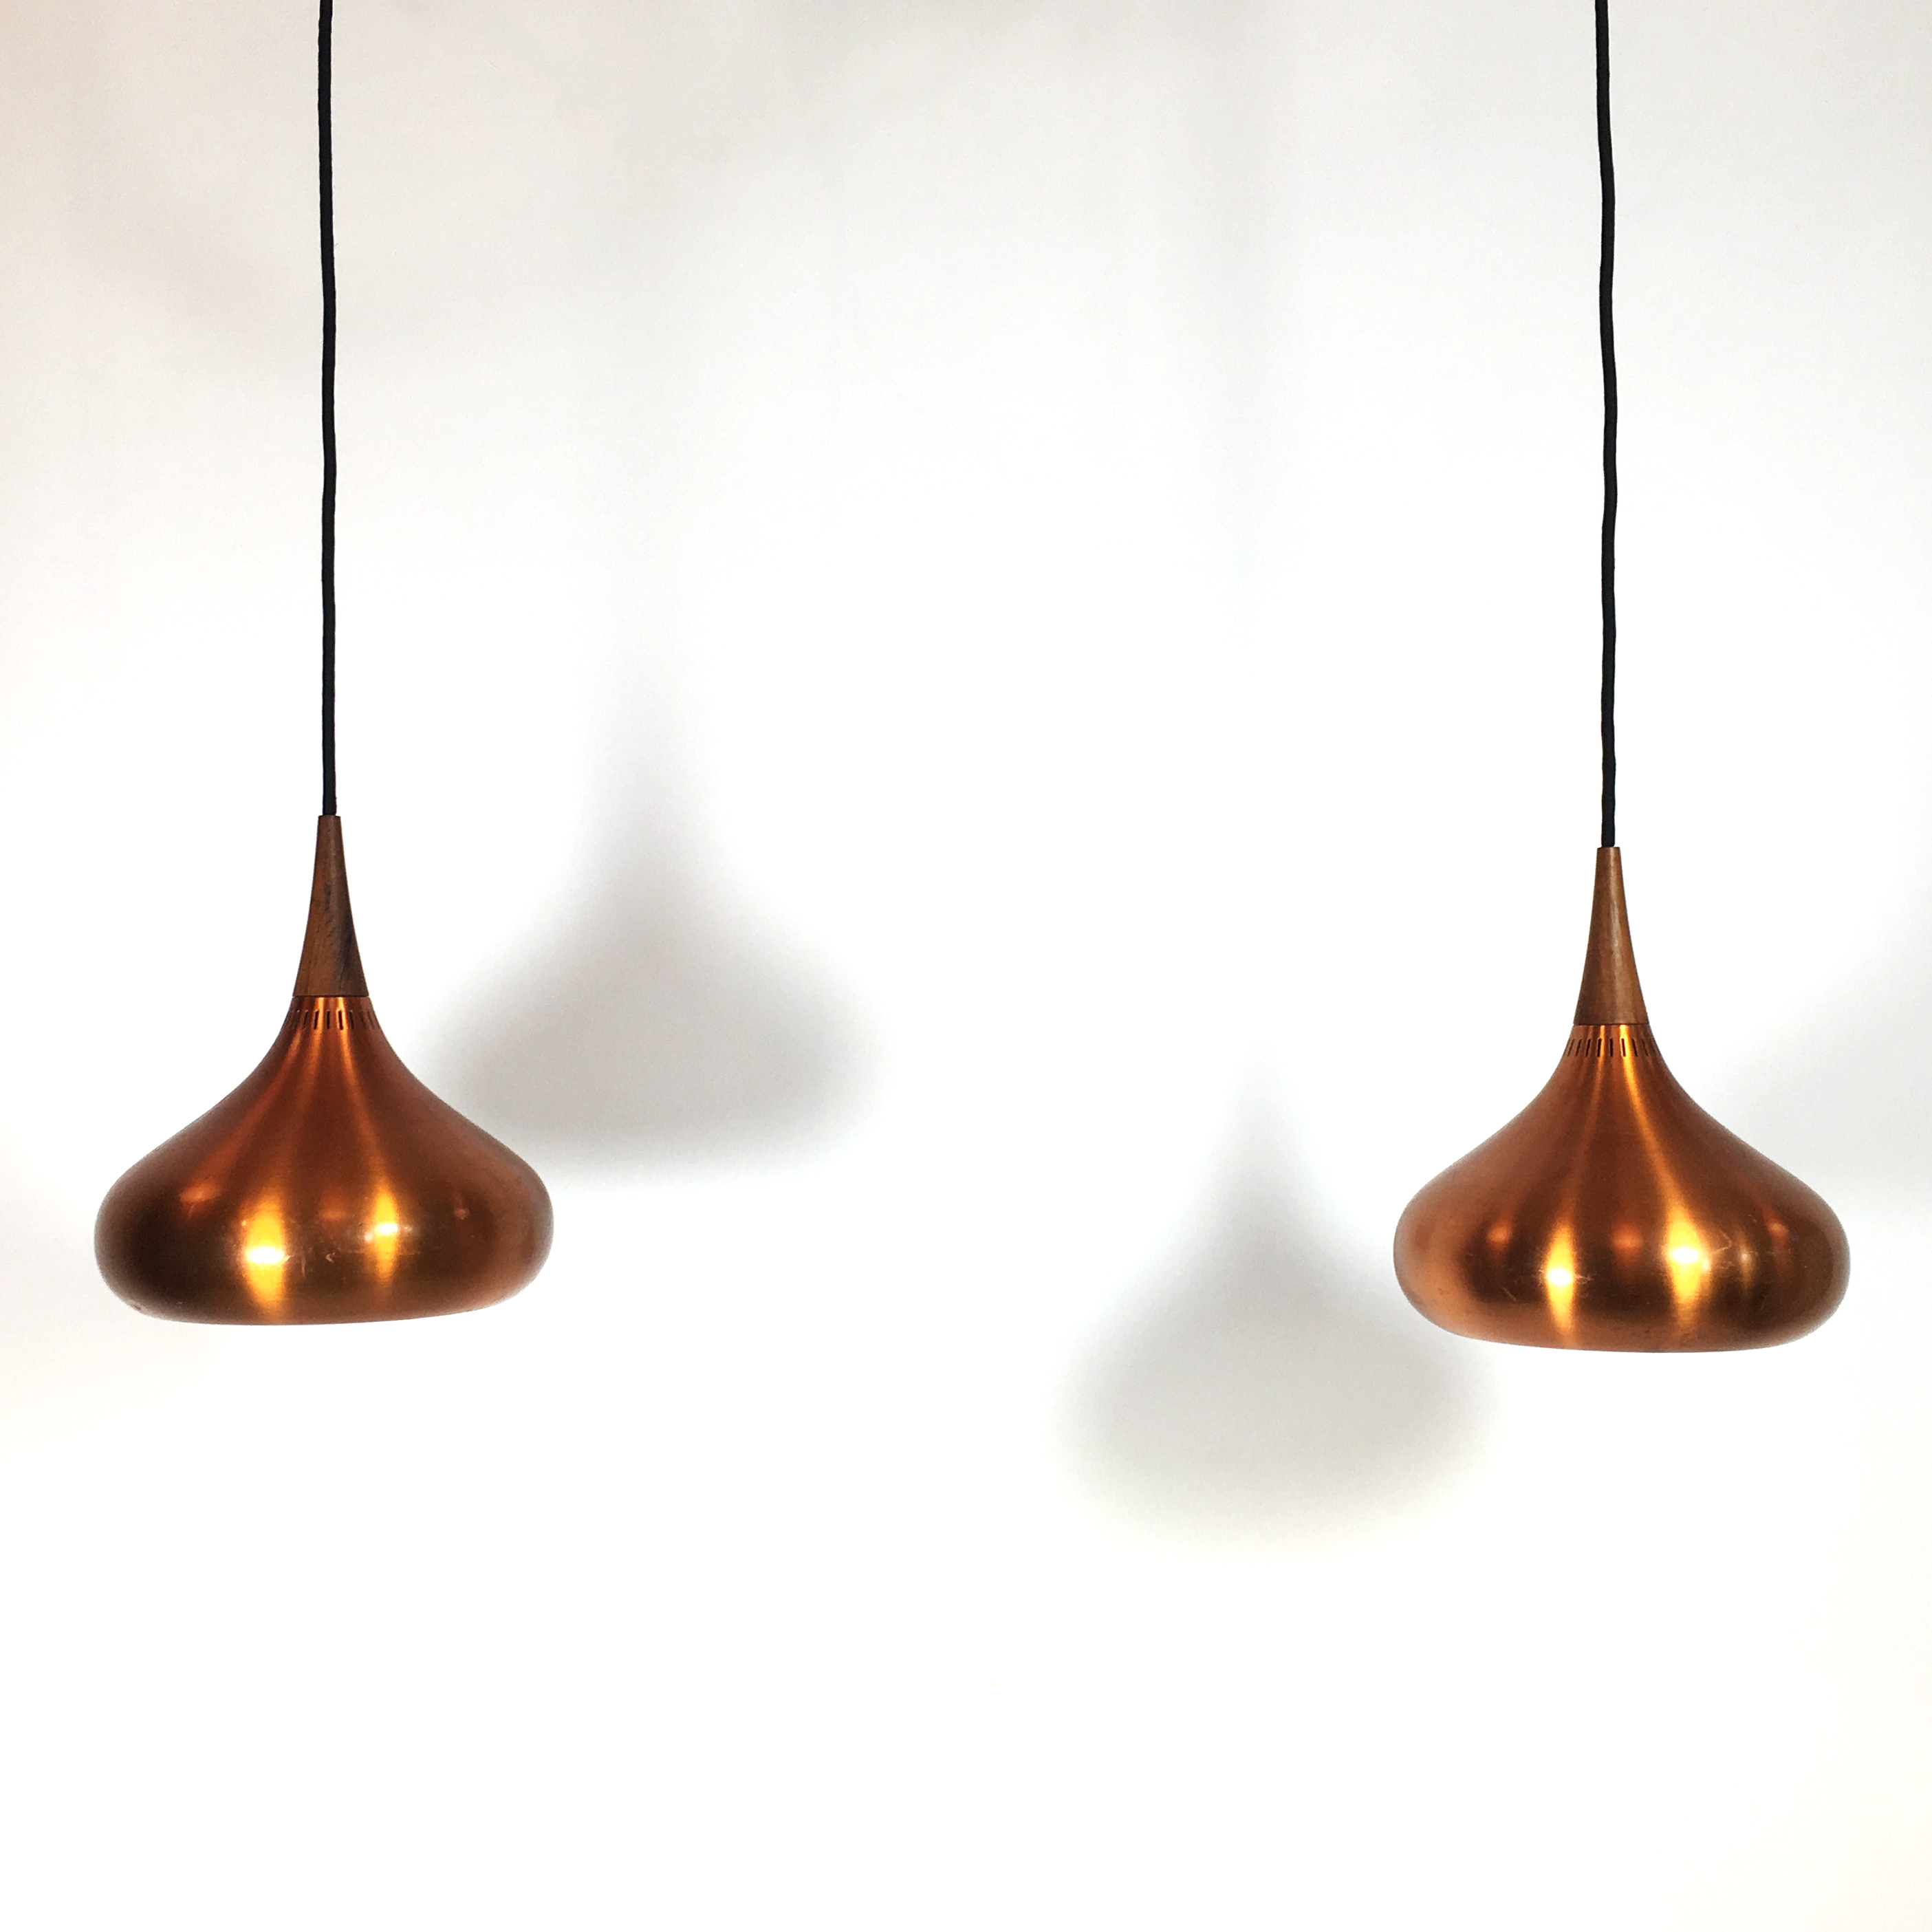 Pair of Orient pendants by Jo Hammerborg.